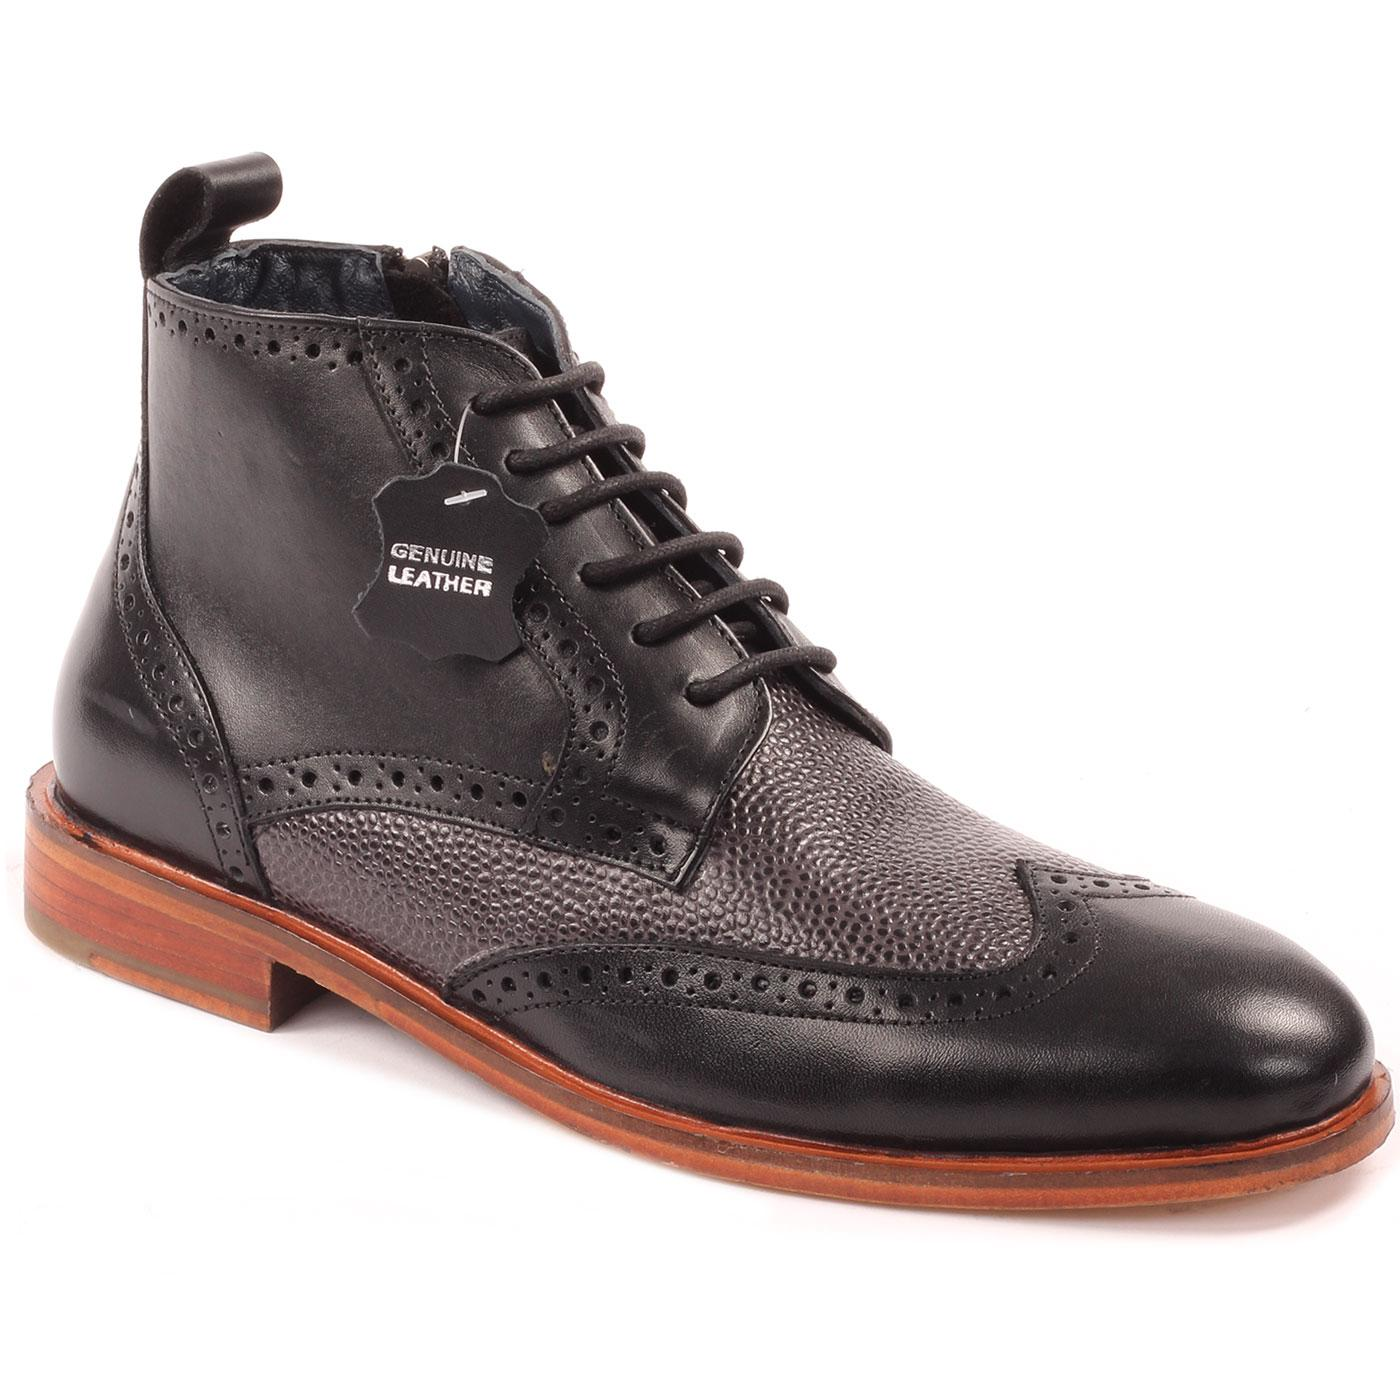 Eros PAOLO VANDINI Mod Side Zip Brogue Boots (B)